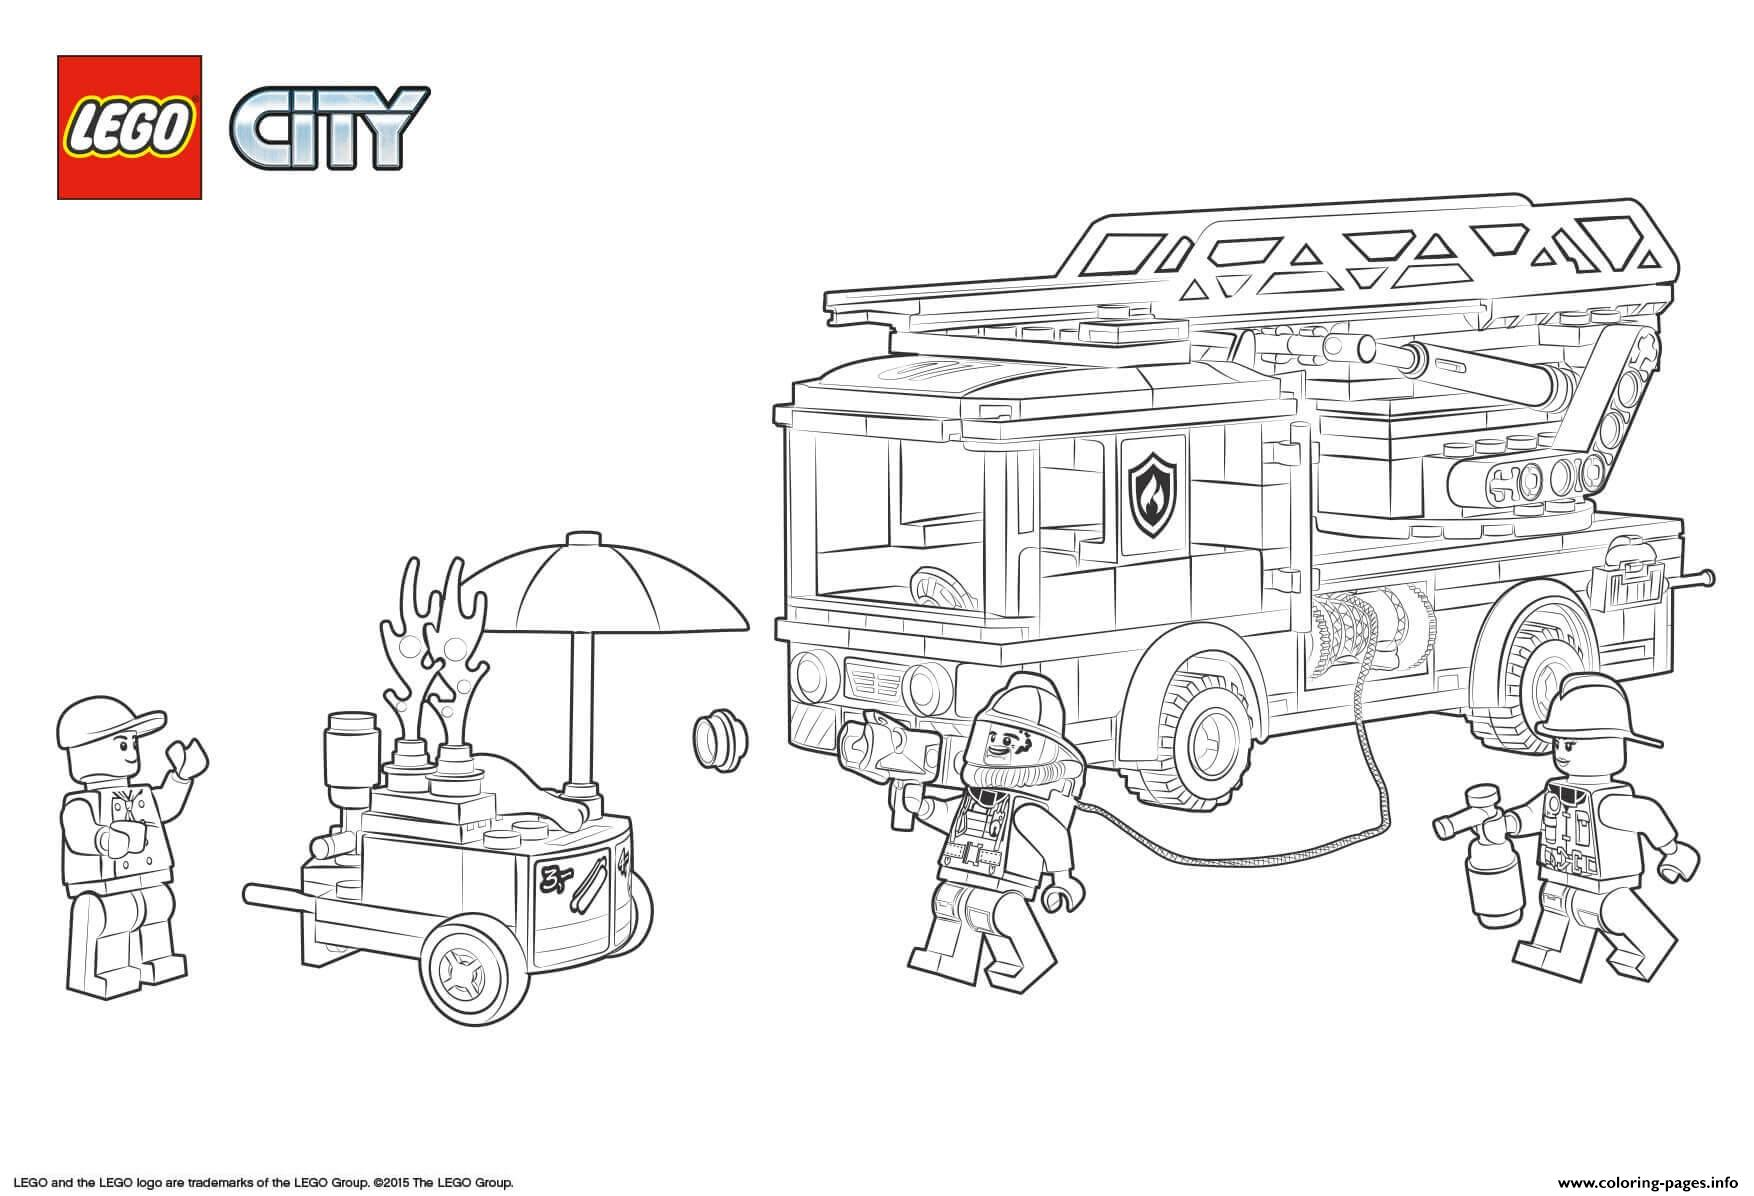 Lego City Fire Station Coloring Pages Printable